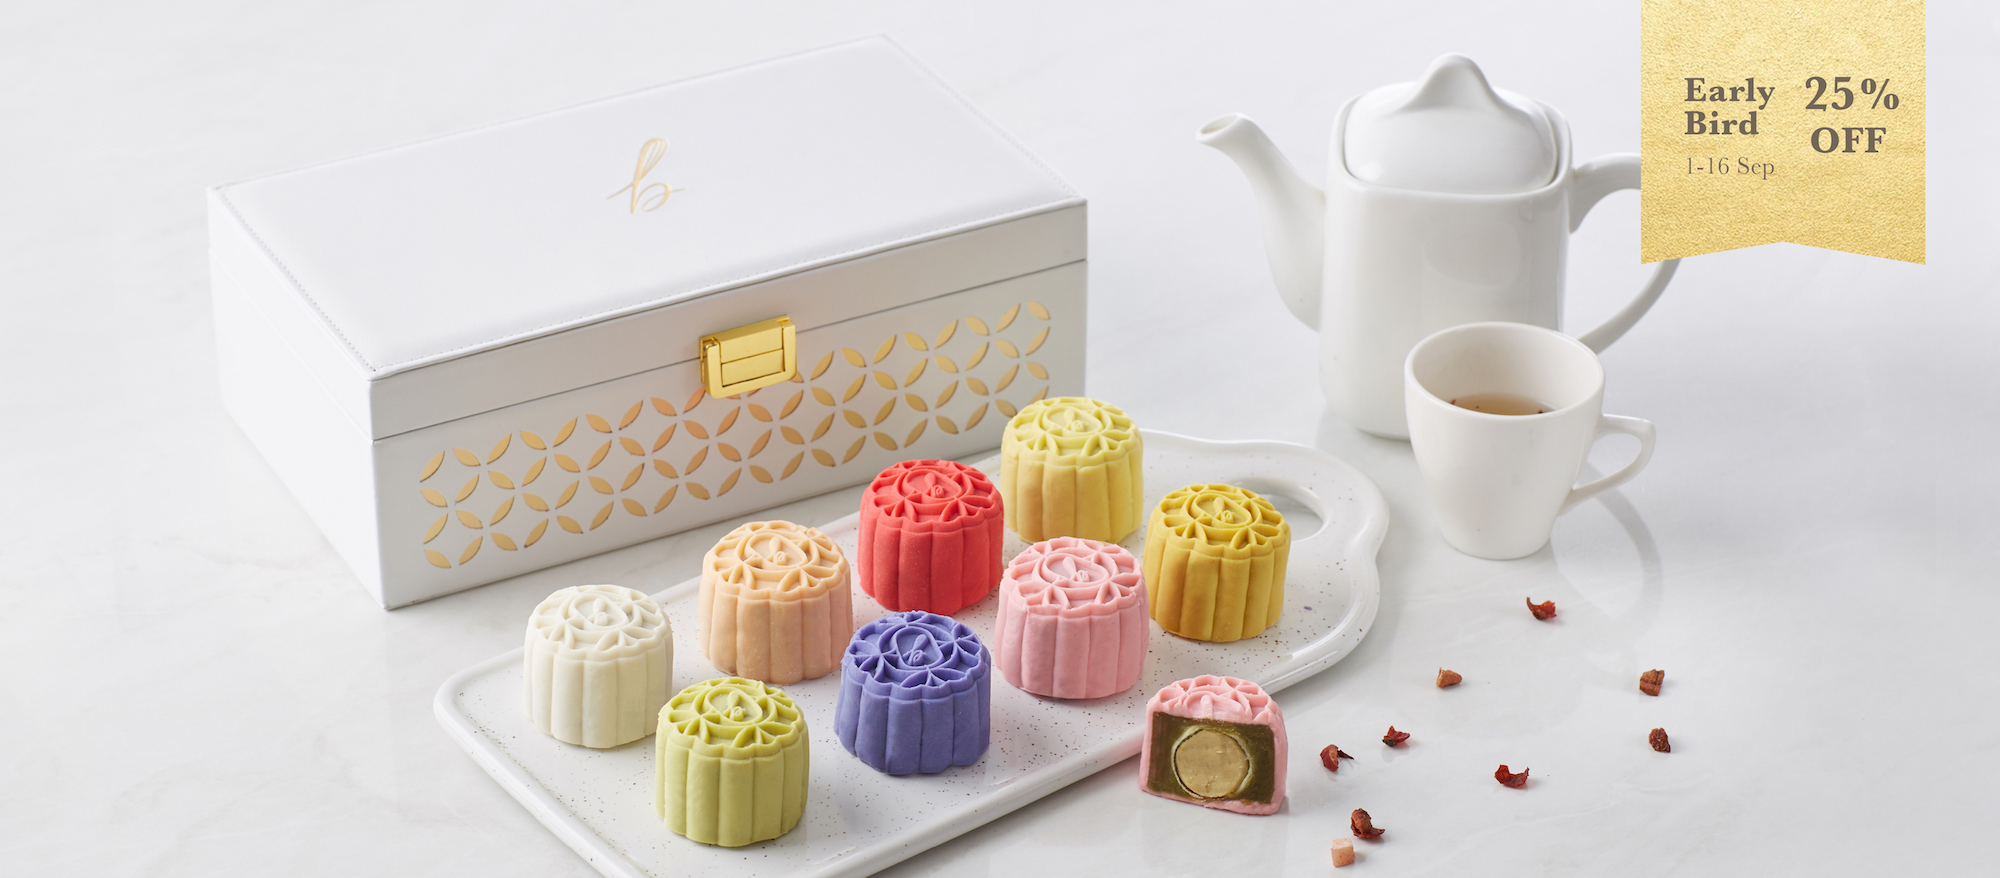 Snowskin Mooncakes Early Bird